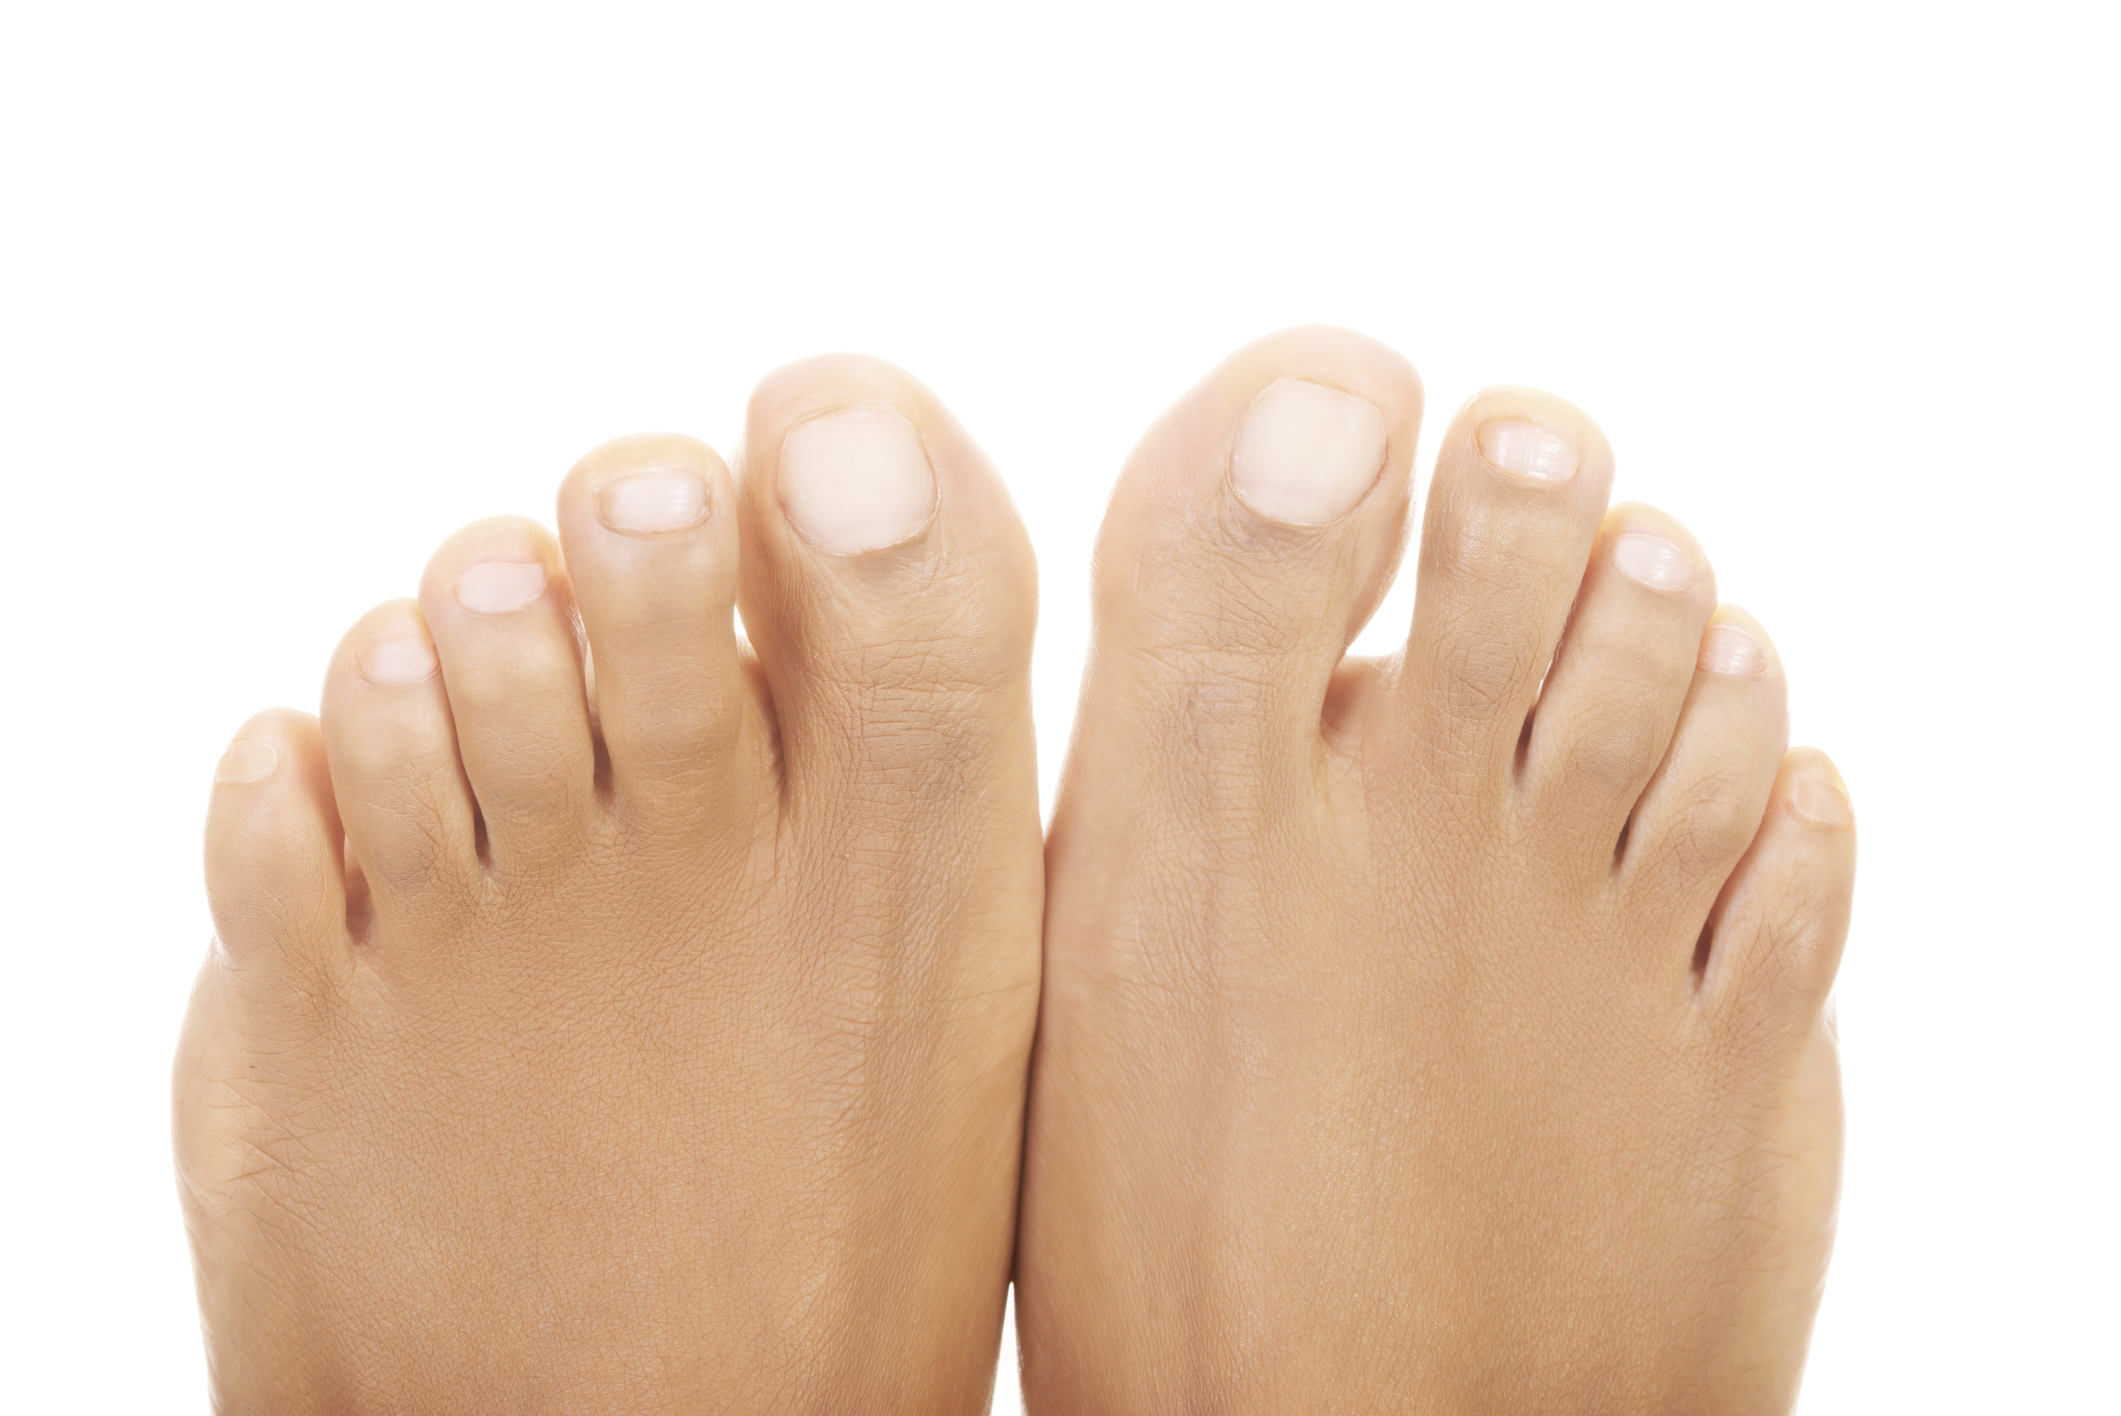 How to Cure Yellow, Thick Nails | LIVESTRONG.COM